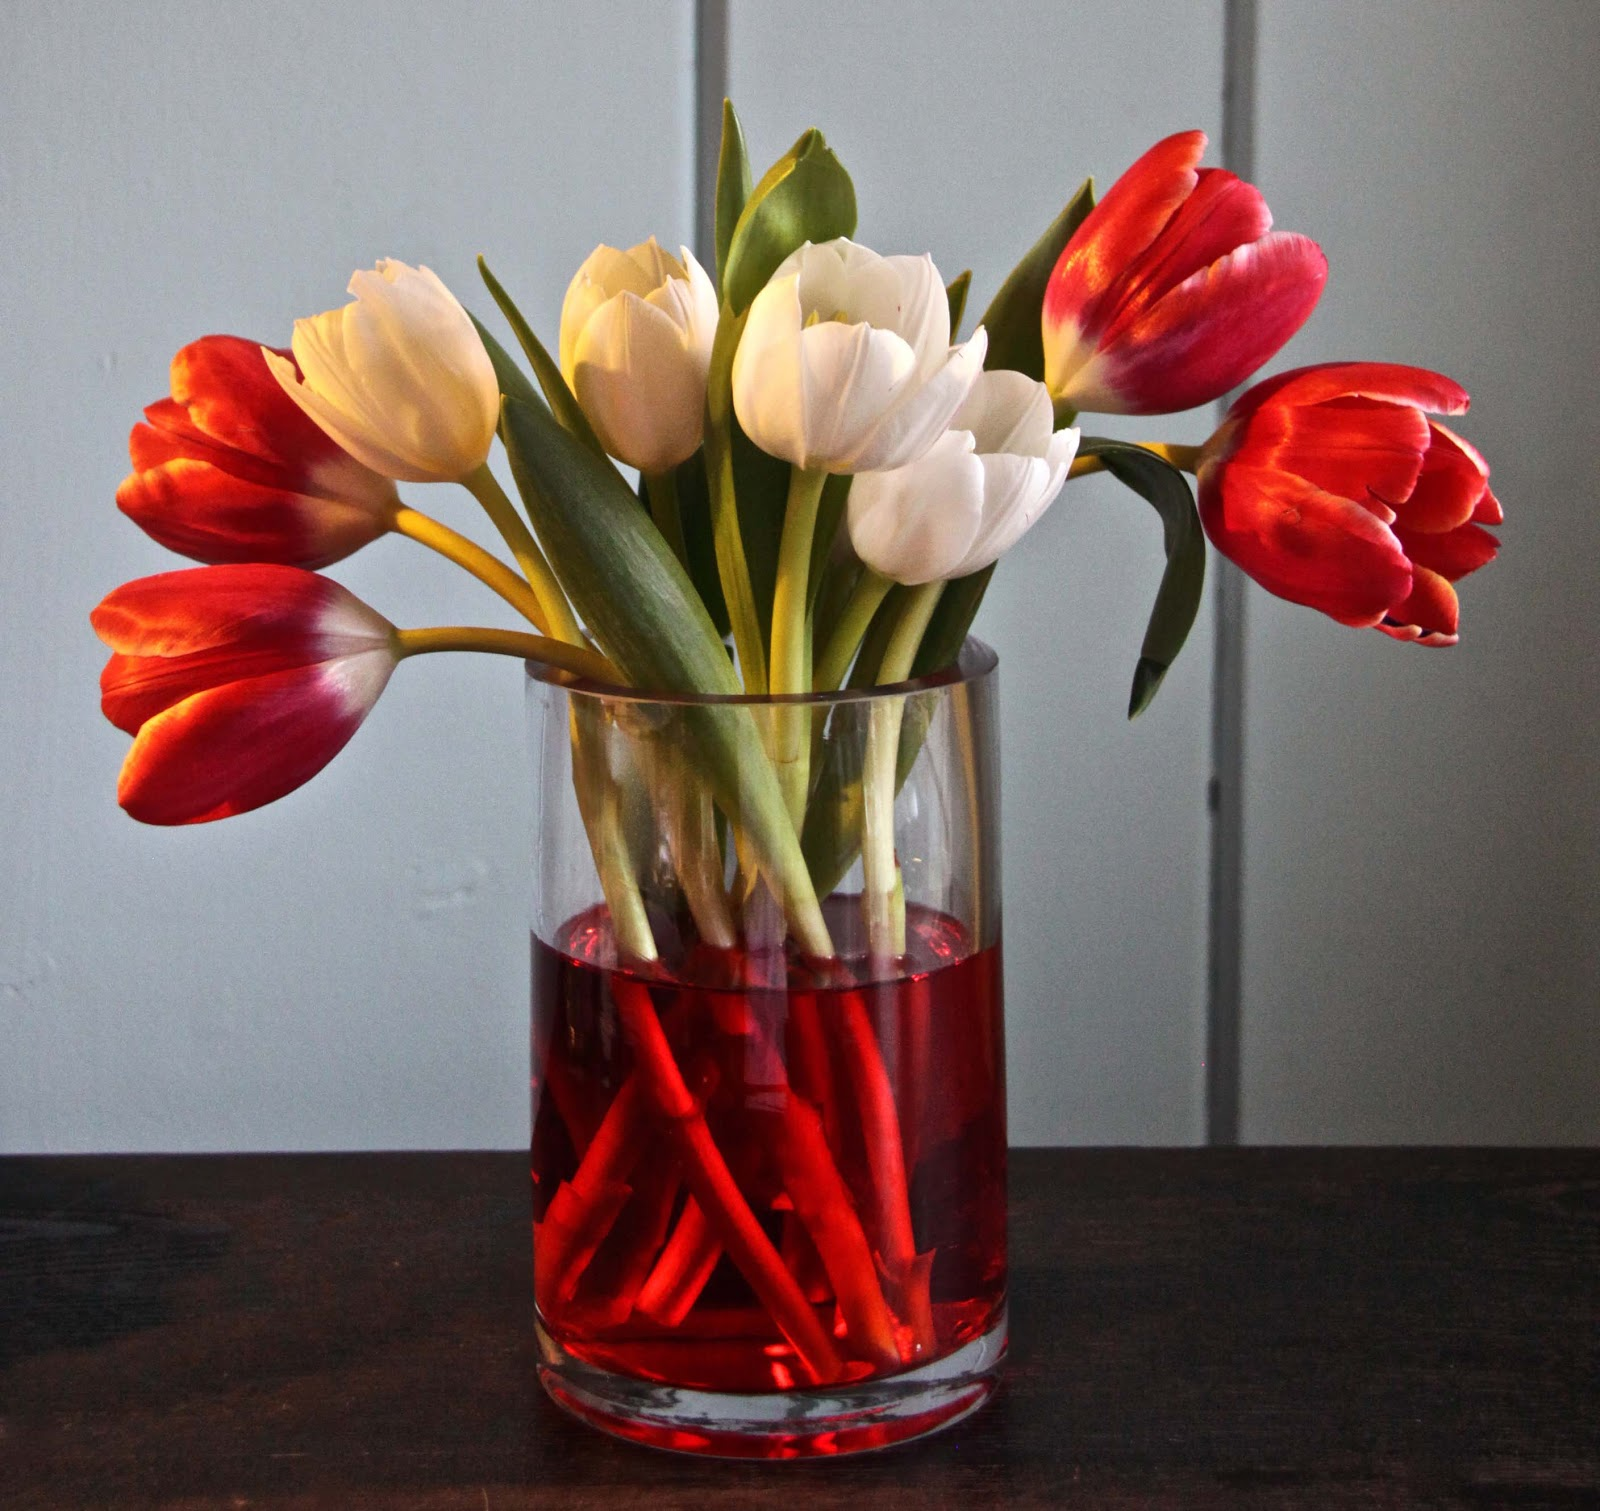 Fireflies and Jellybeans: Love Tulips